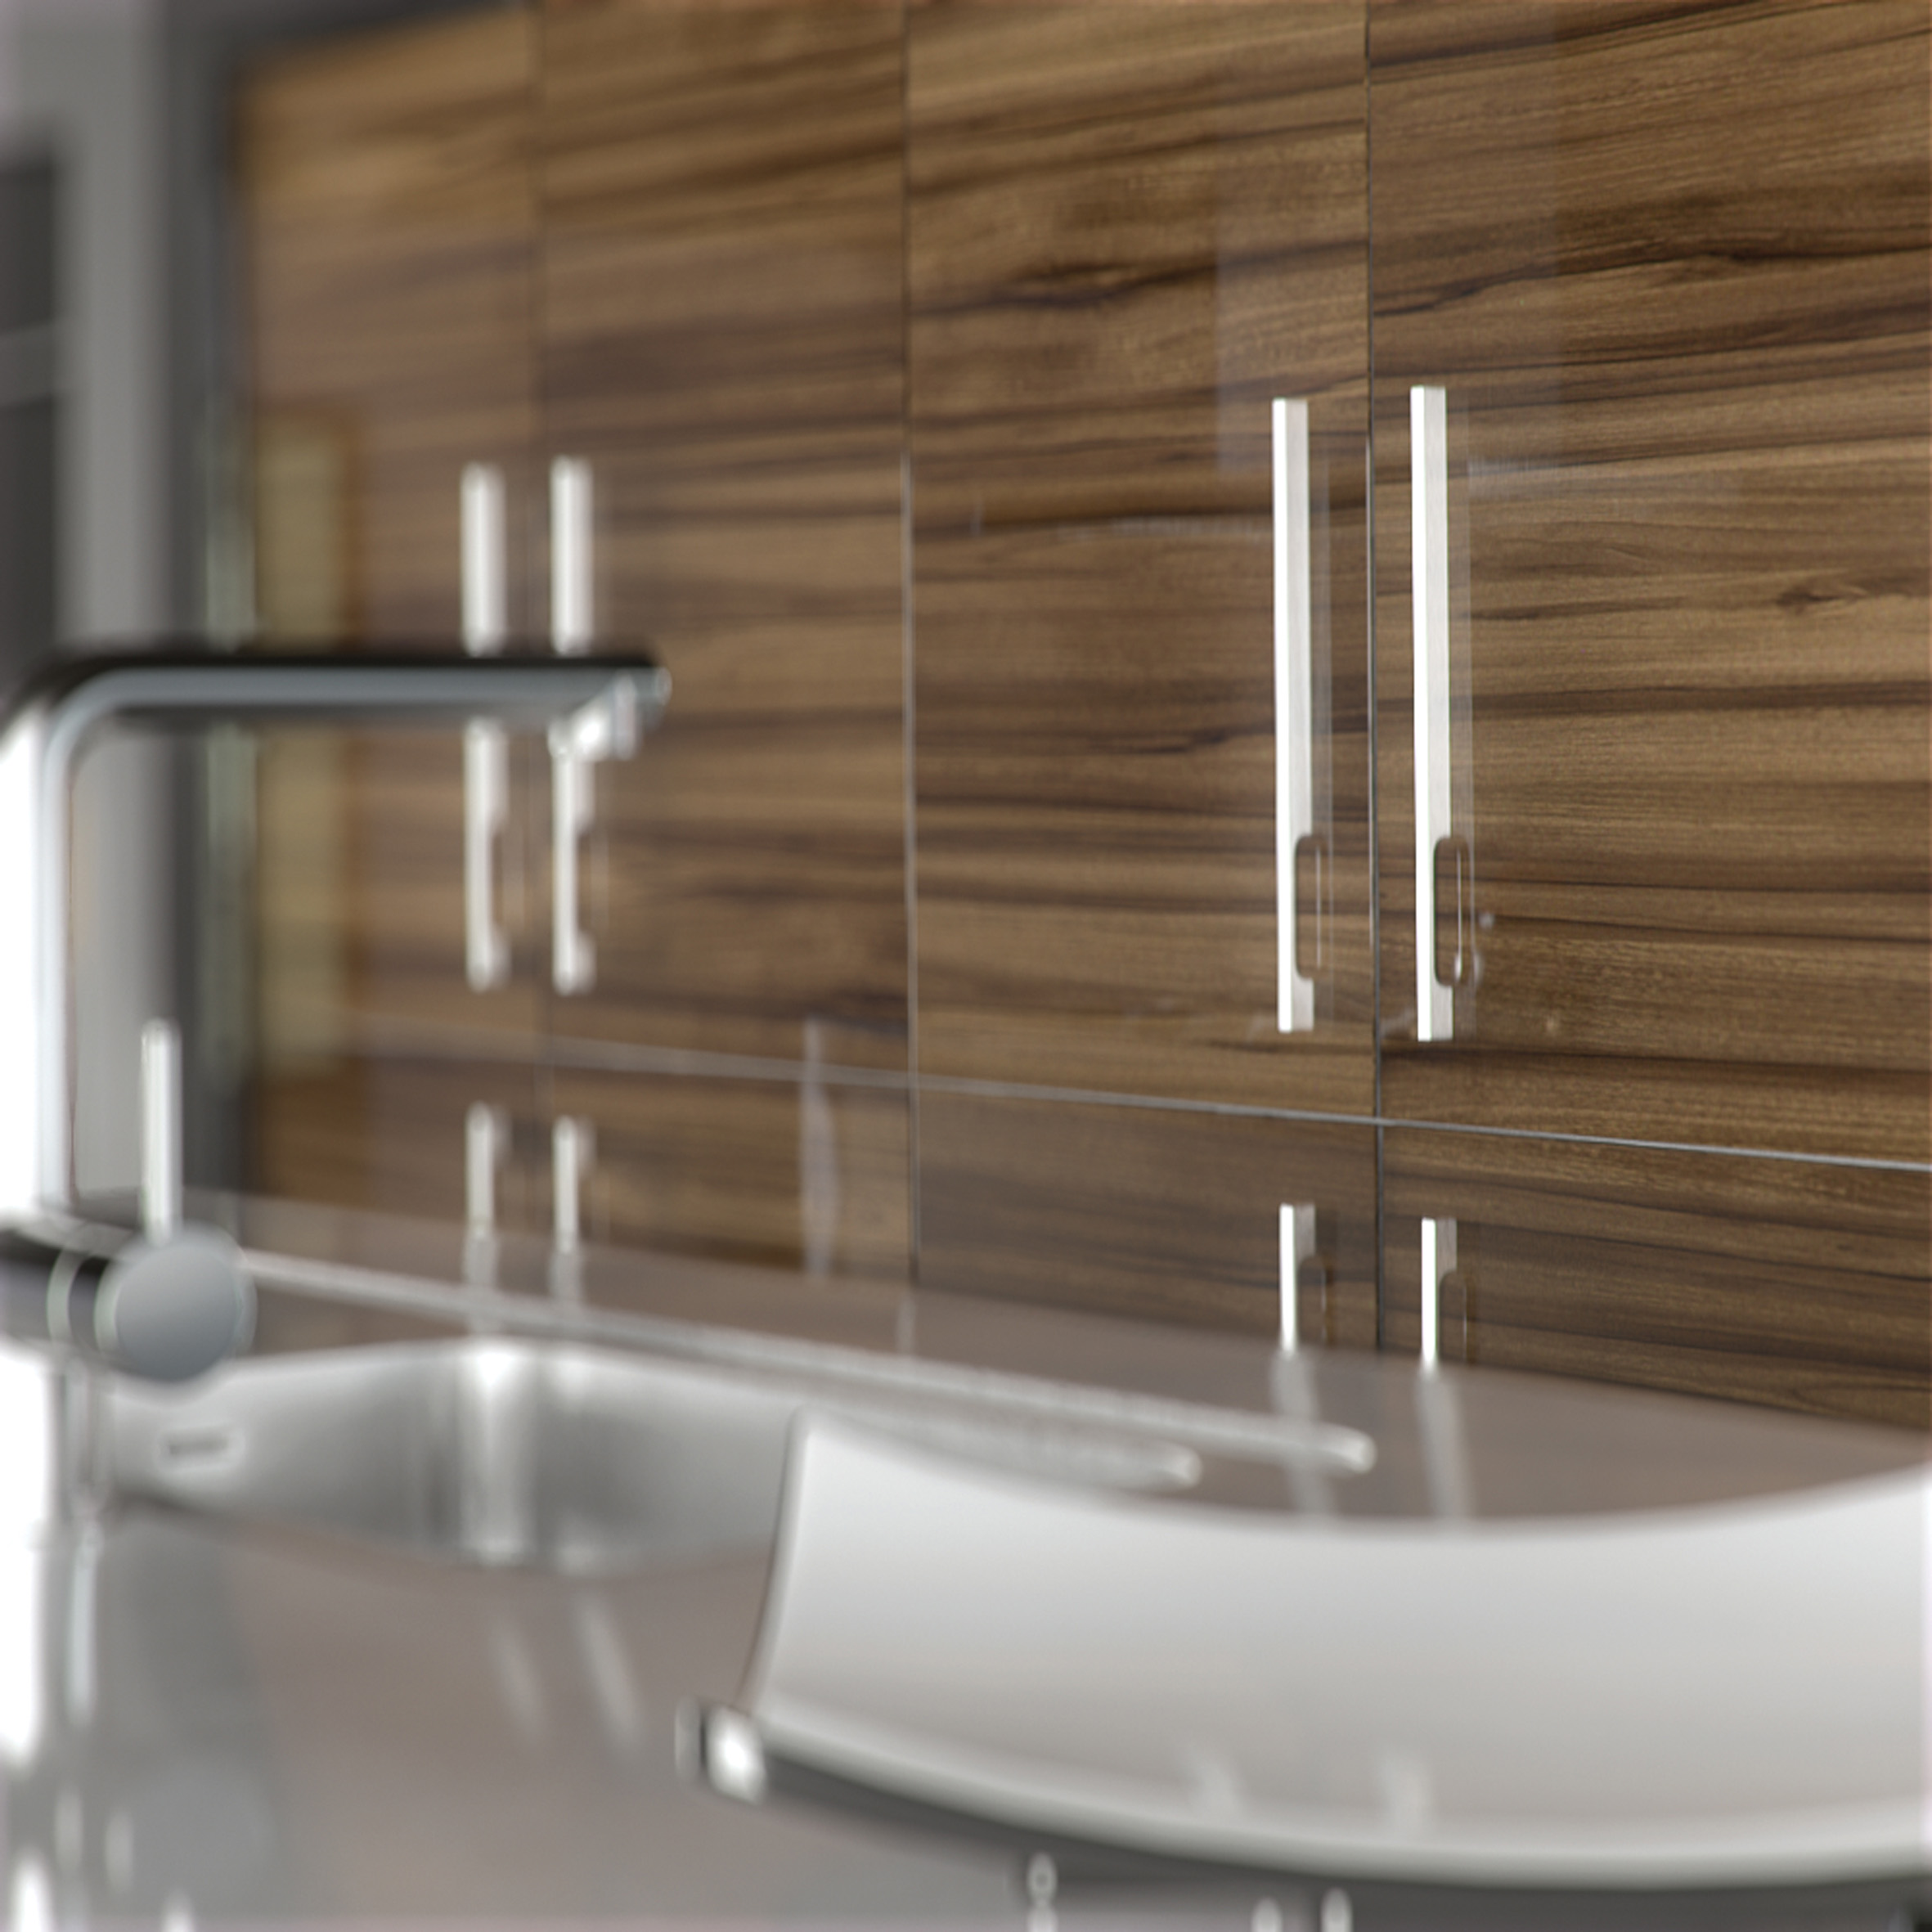 Tigerwood Cheap Kitchen Units And Cabinets For Sale